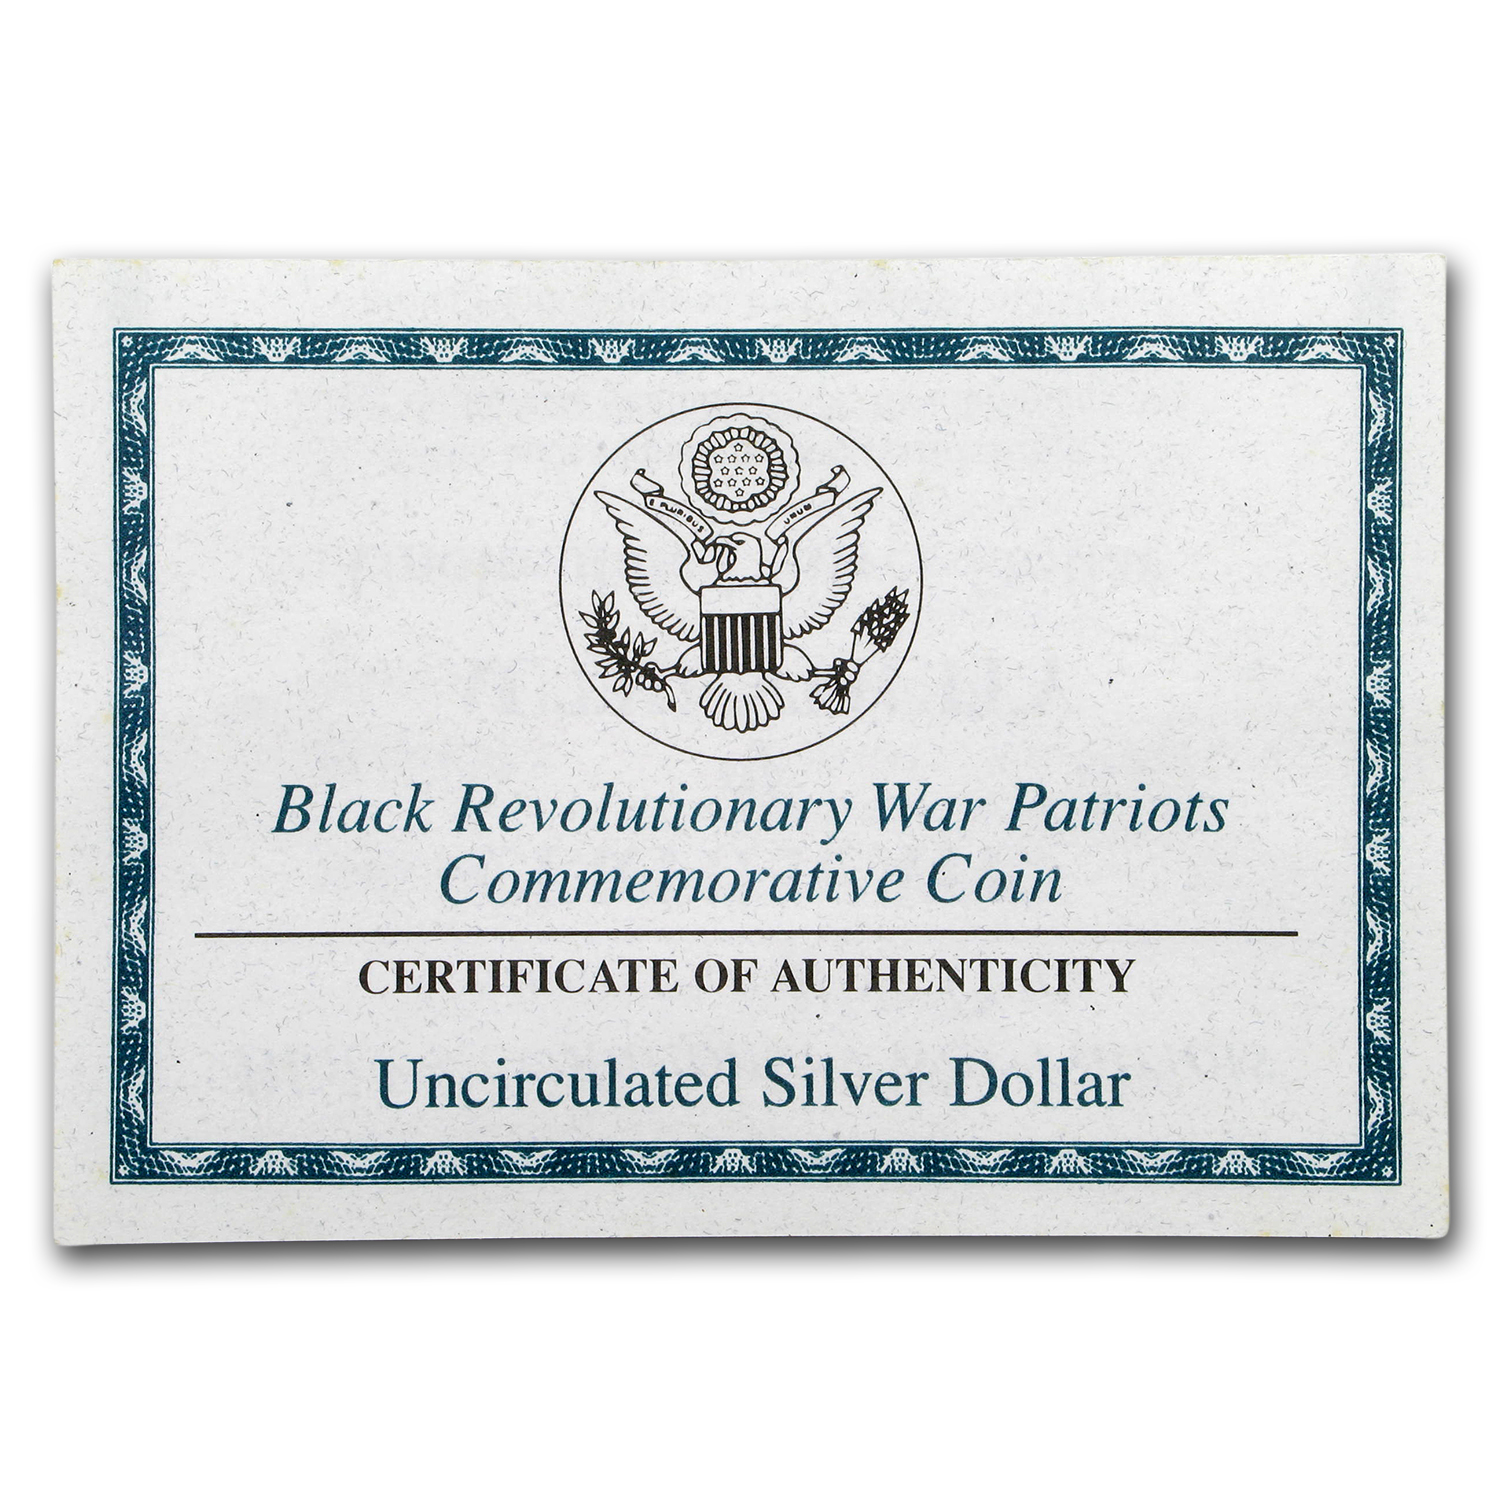 OGP Box & COA - 1998 2-Coin Rev. War Black Patriots PF/UNC Set